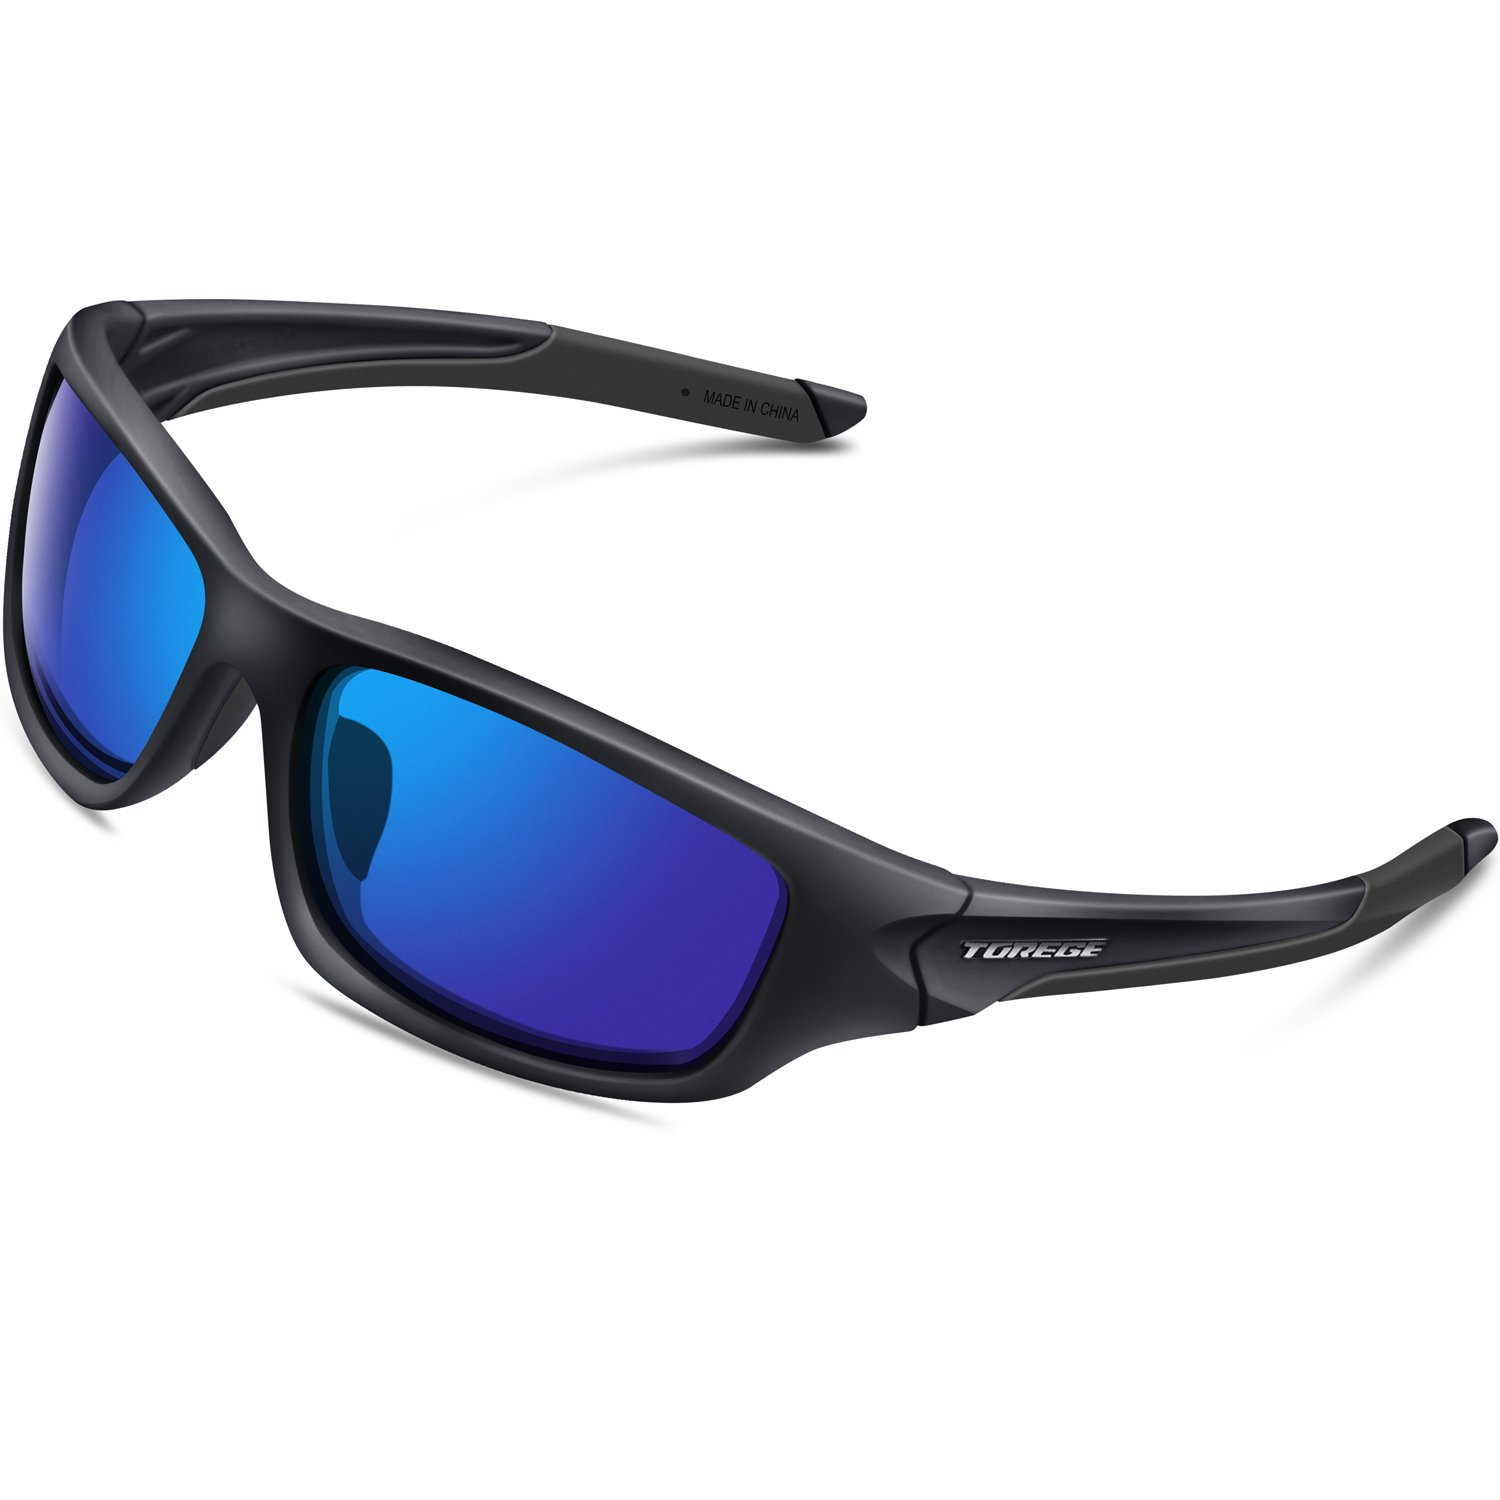 fc184627c6 Amazon.com   TOREGE Polarized Sports Sunglasses for Cycling Running Fishing  Golf TR90 Unbreakable Frame TR011 (Black Blue)   Sports   Outdoors